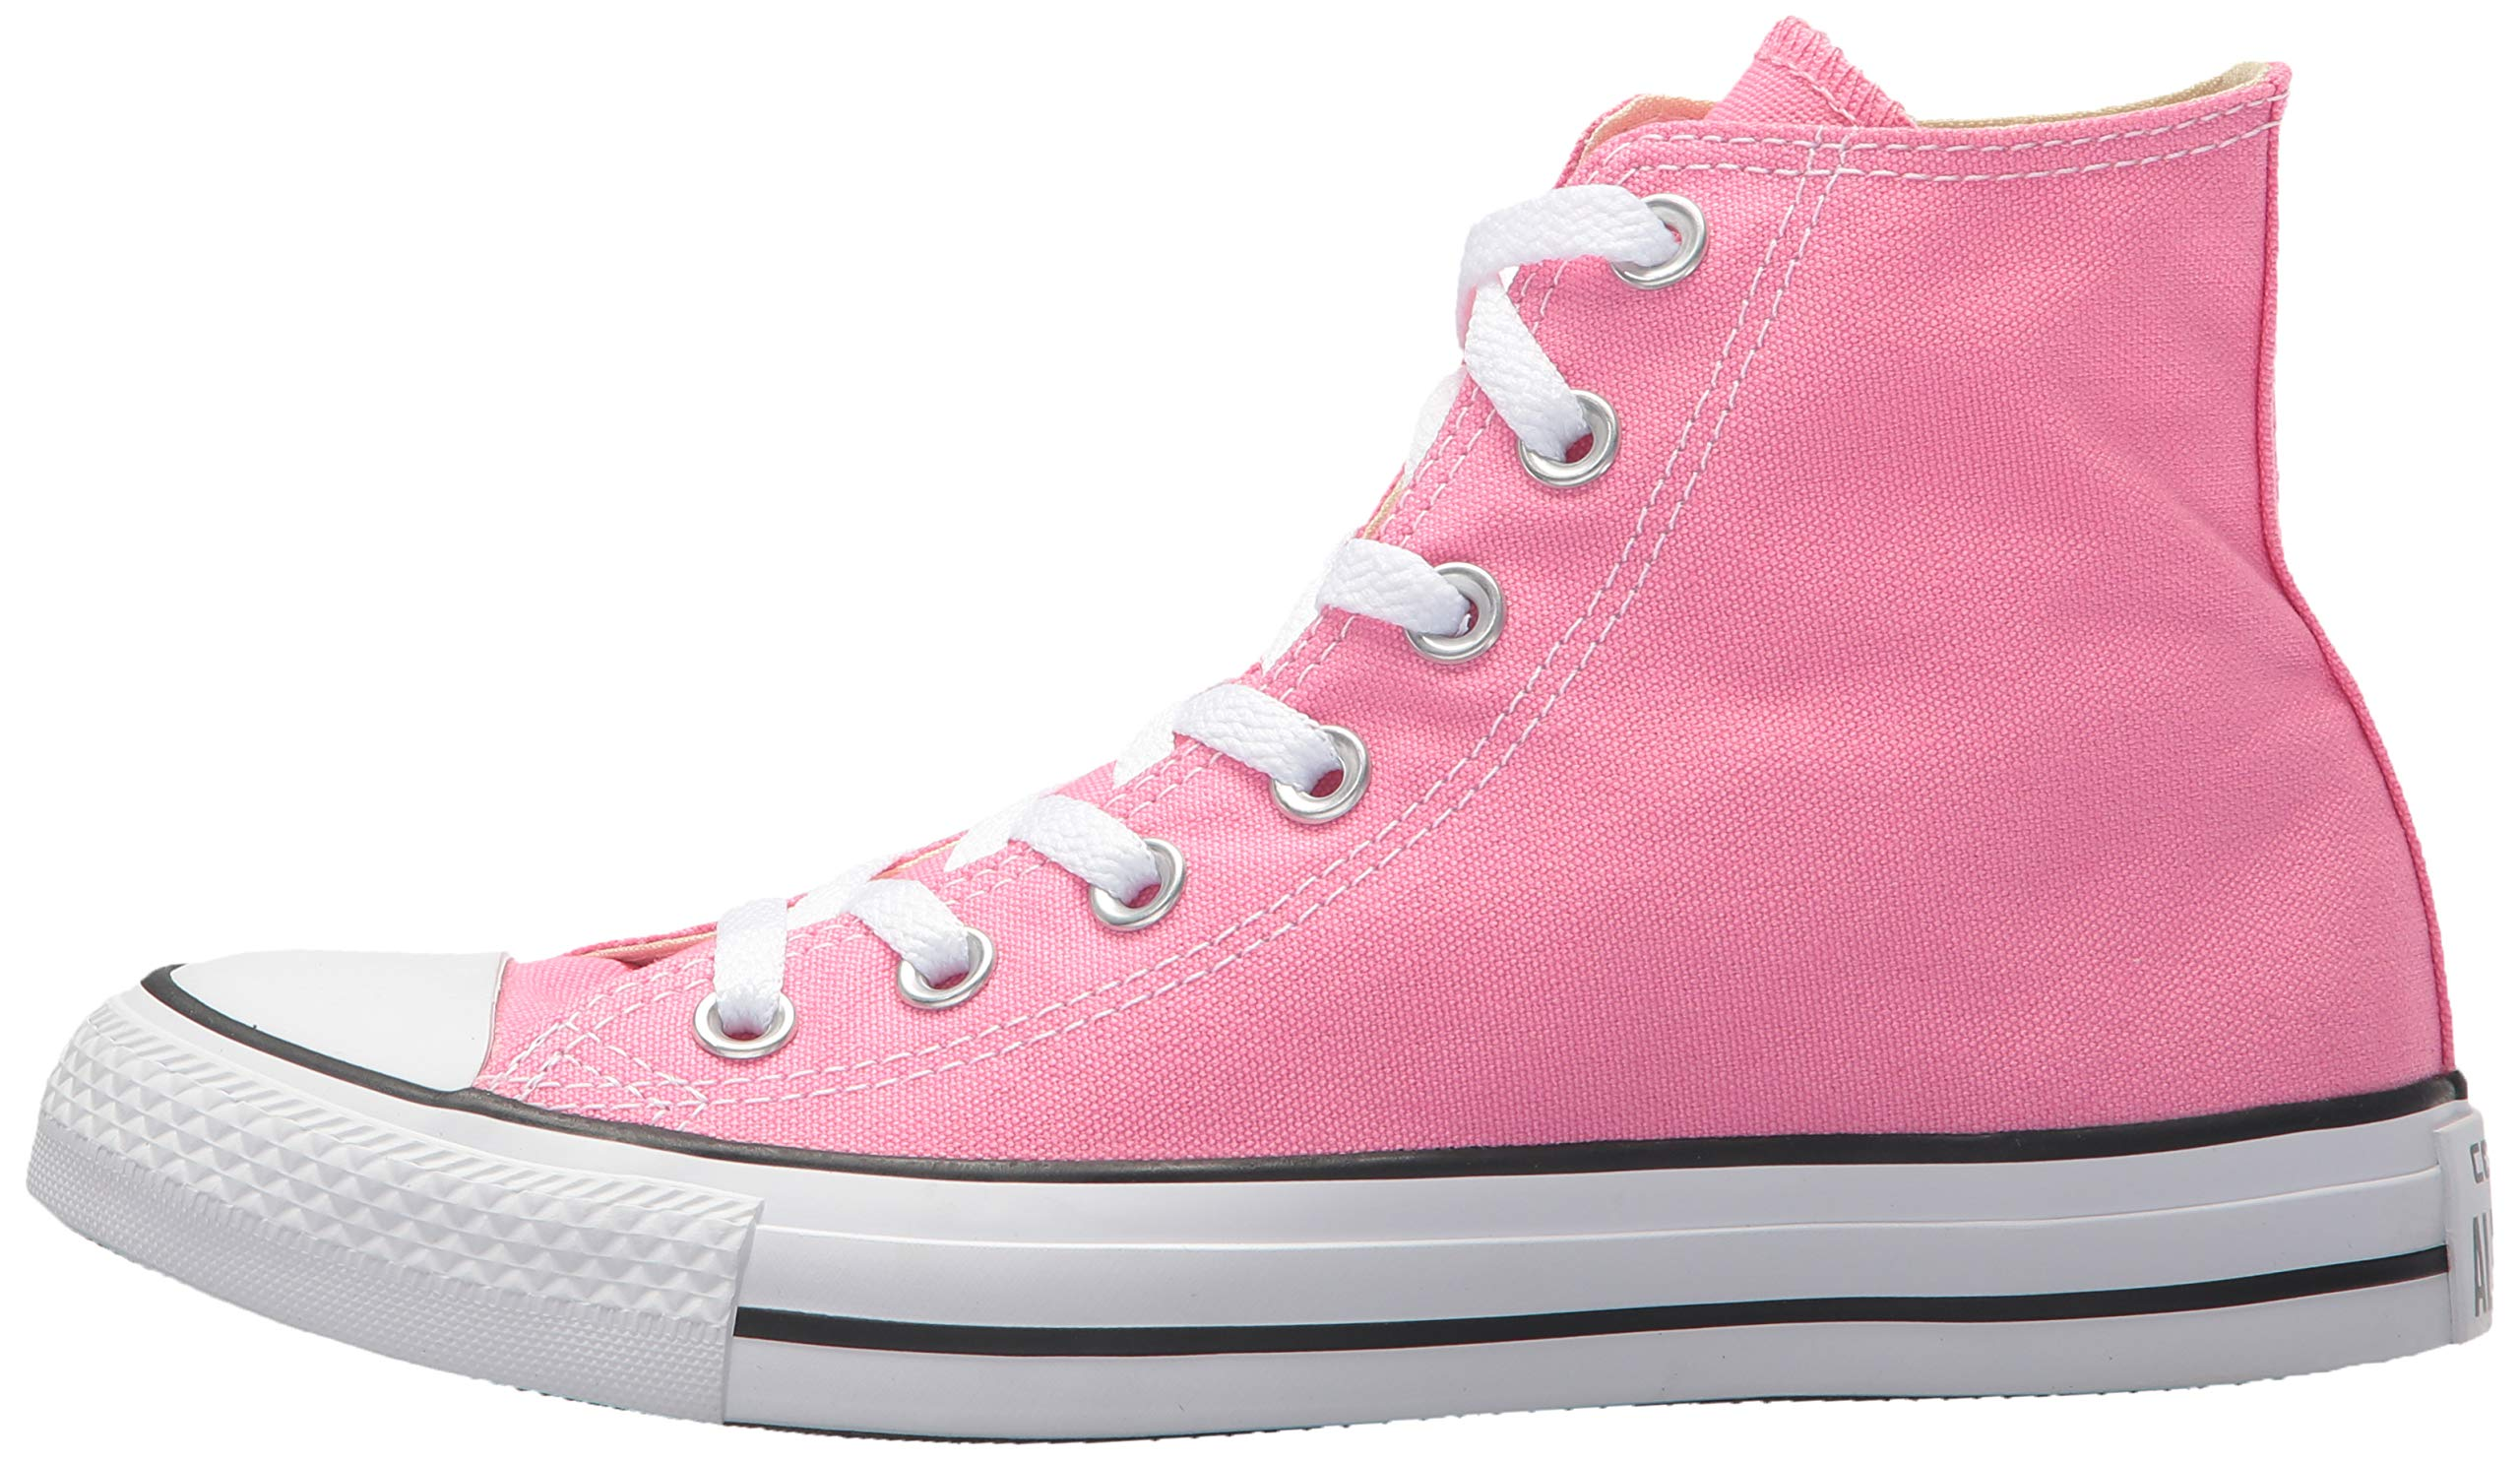 Chuck Taylor All Star Canvas High Top, Pink, 4 M US by Converse (Image #5)